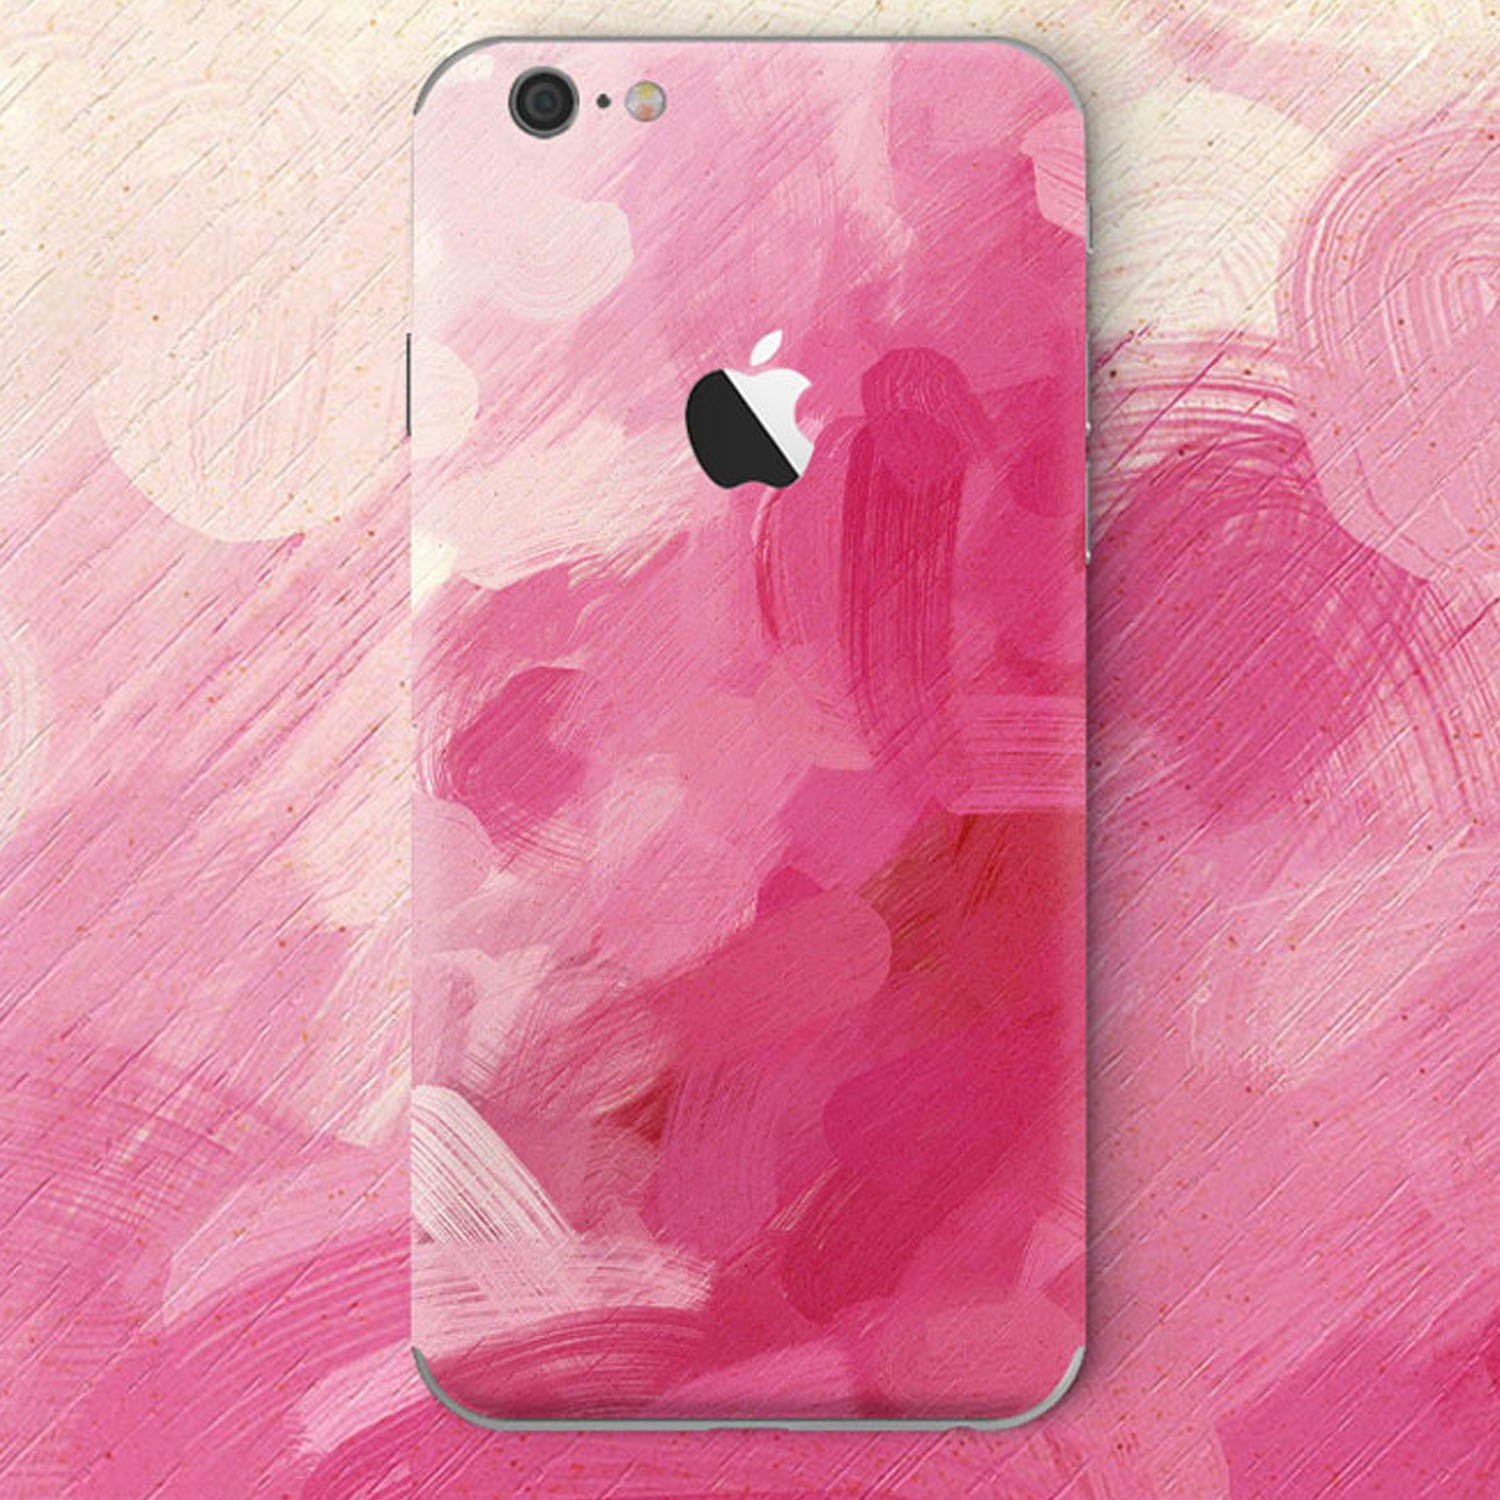 Kritzel Case für iPhone 6 plus / 6s Plus - Pink Detonation